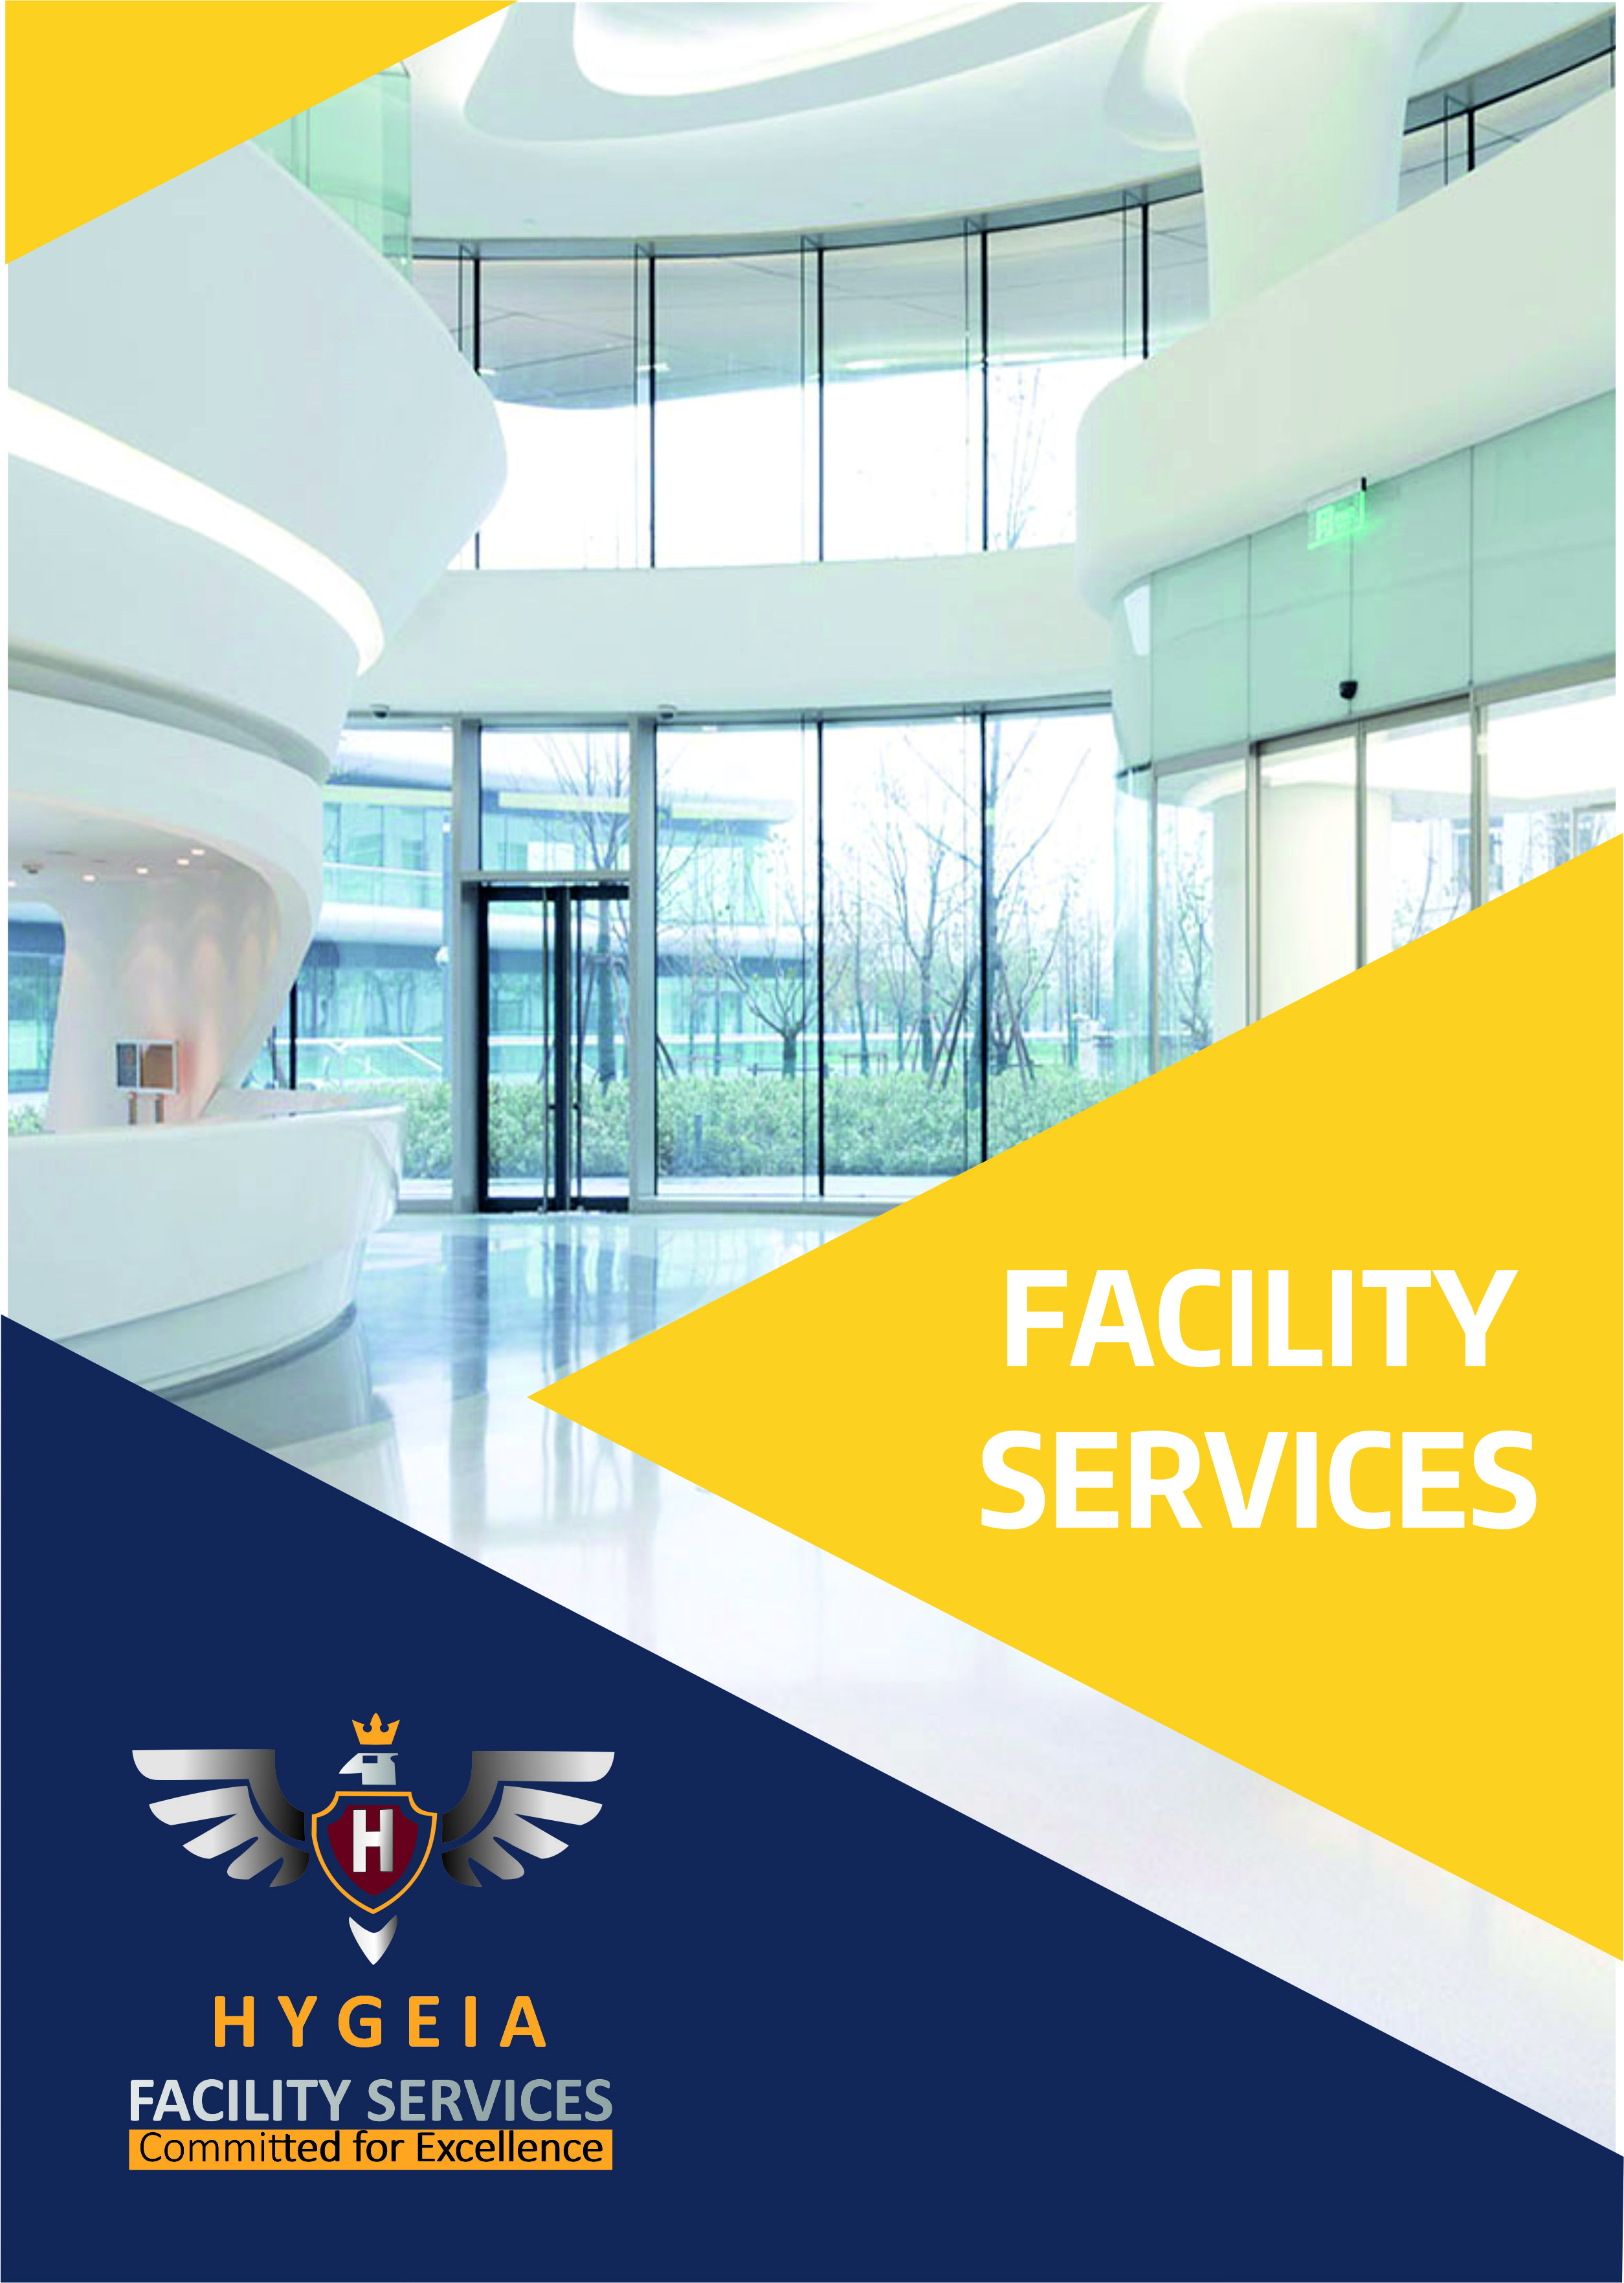 Hygeia Facility Services